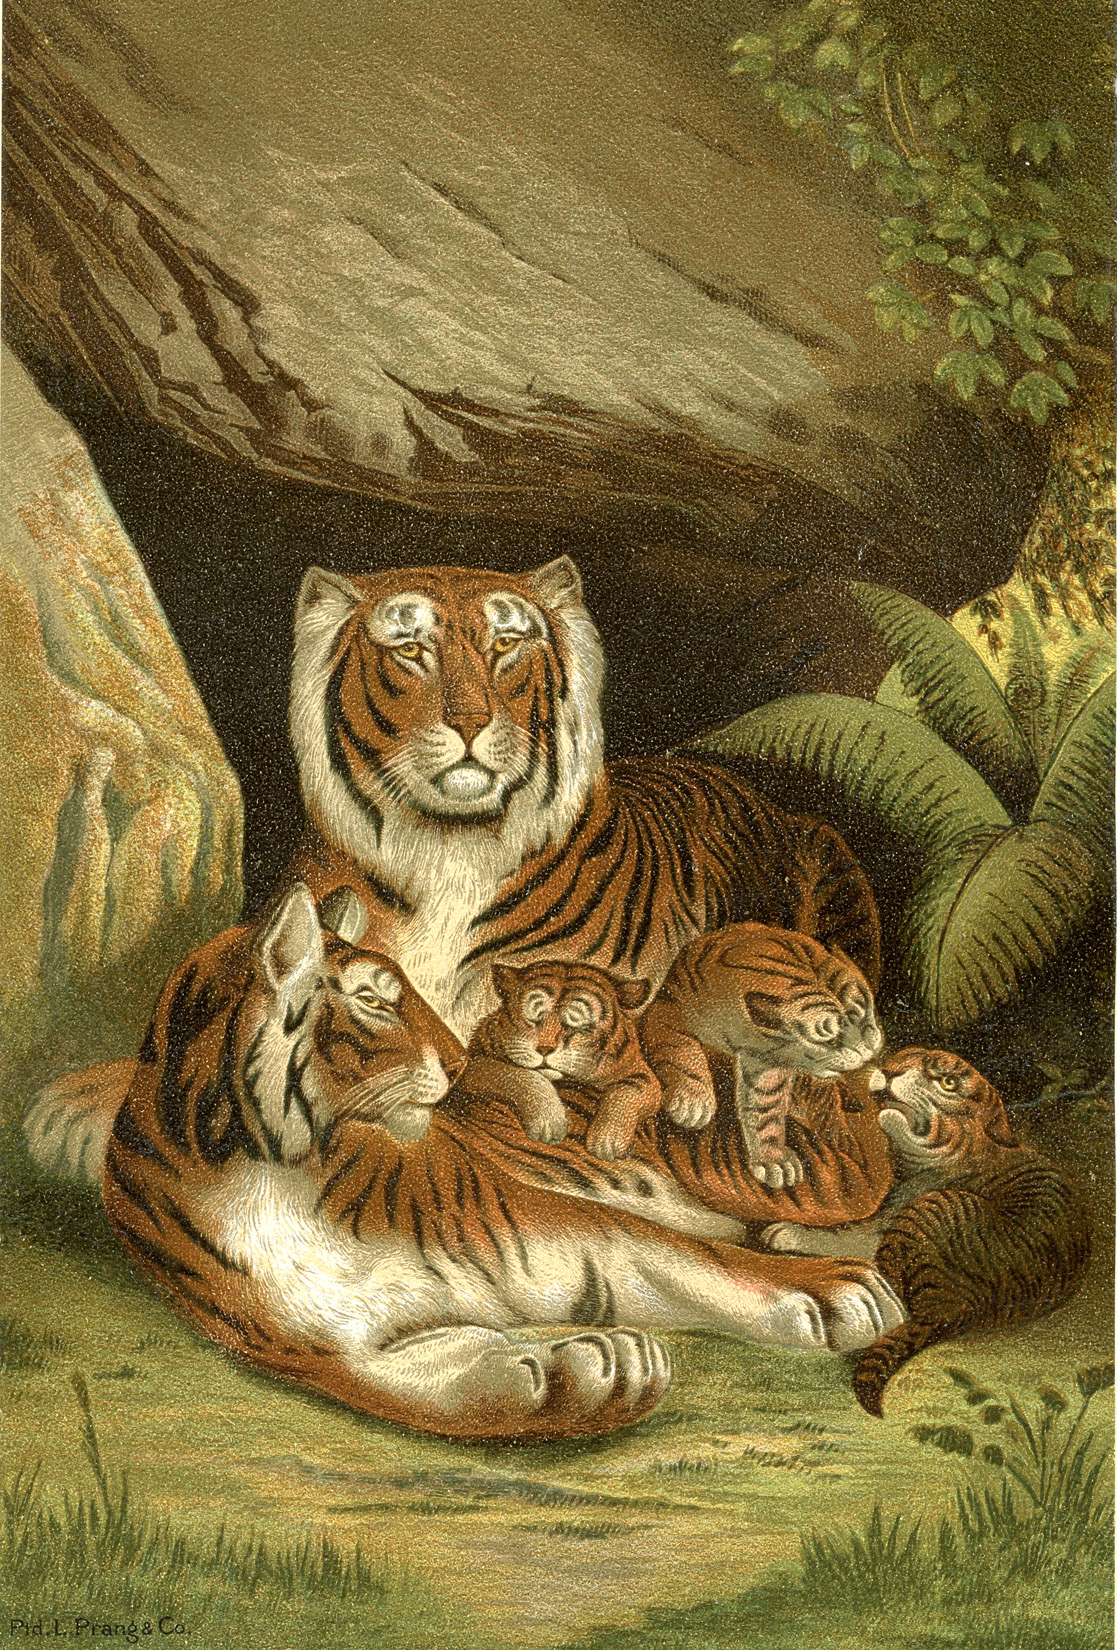 picture about Printable Tiger Pictures named Traditional Tigers Printable - The Graphics Fairy